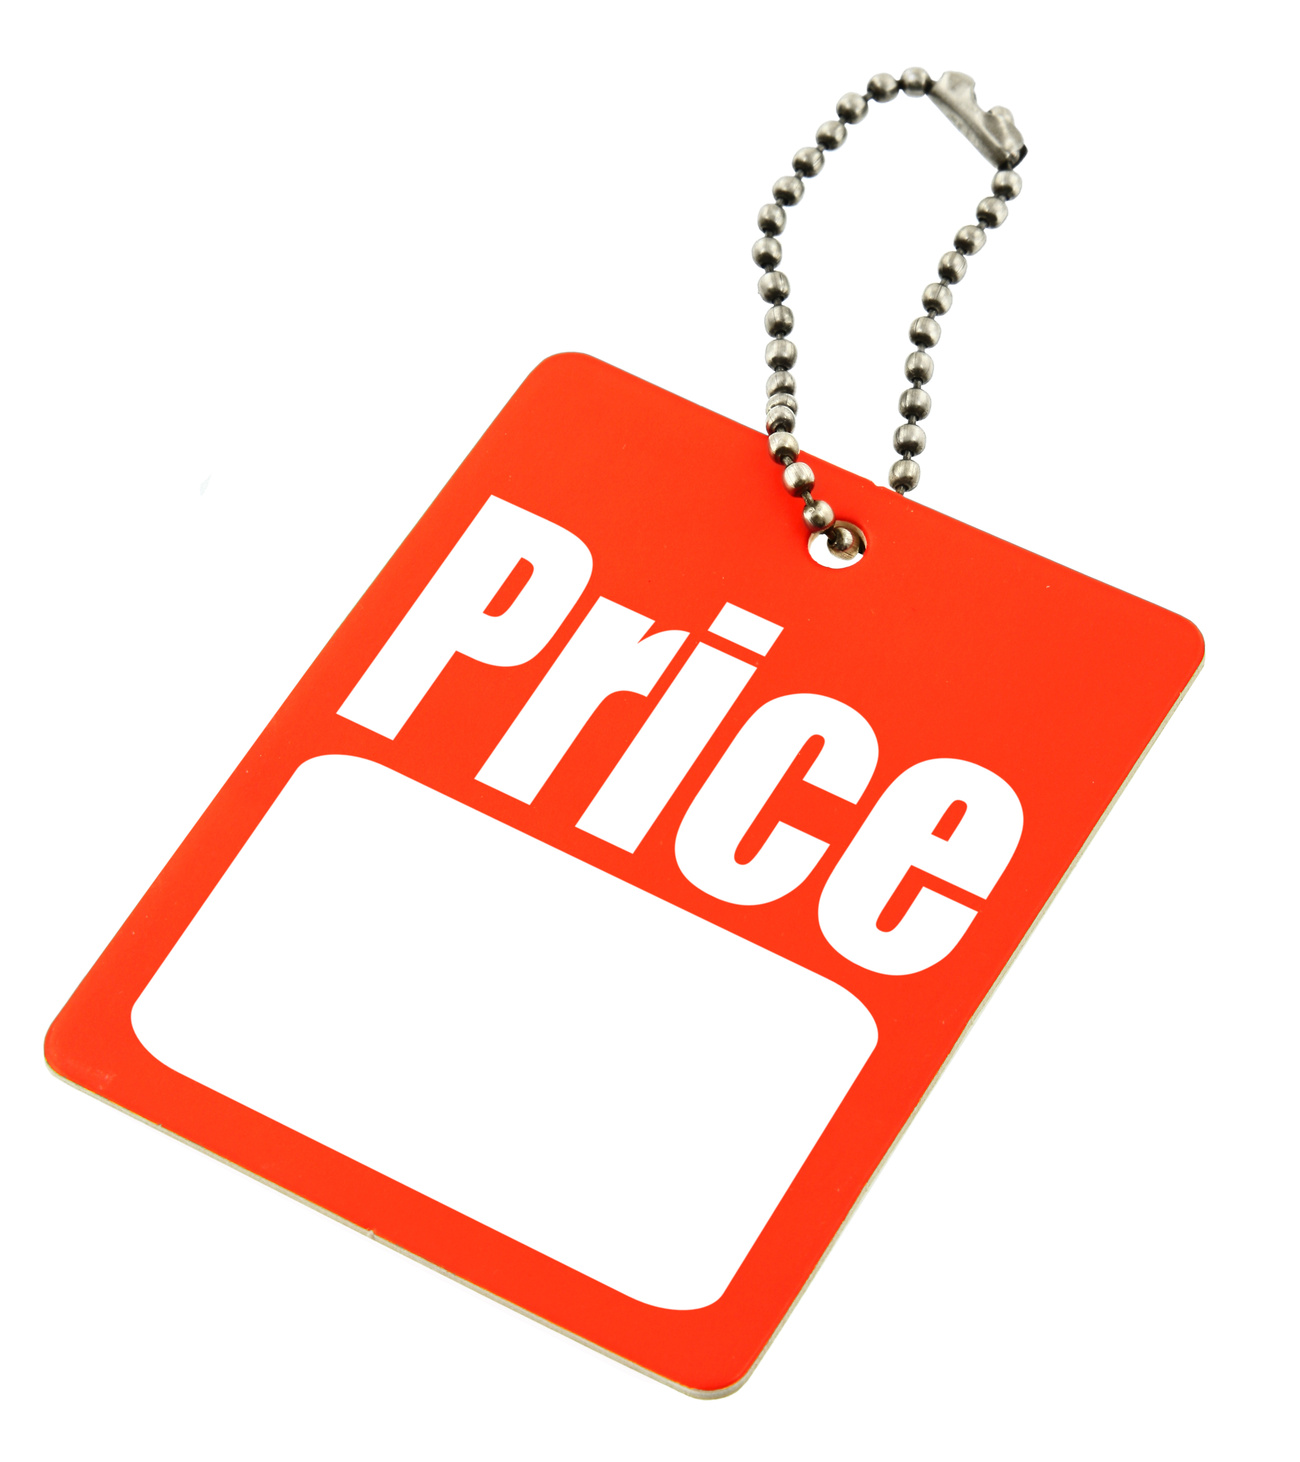 Pricing Clipart.